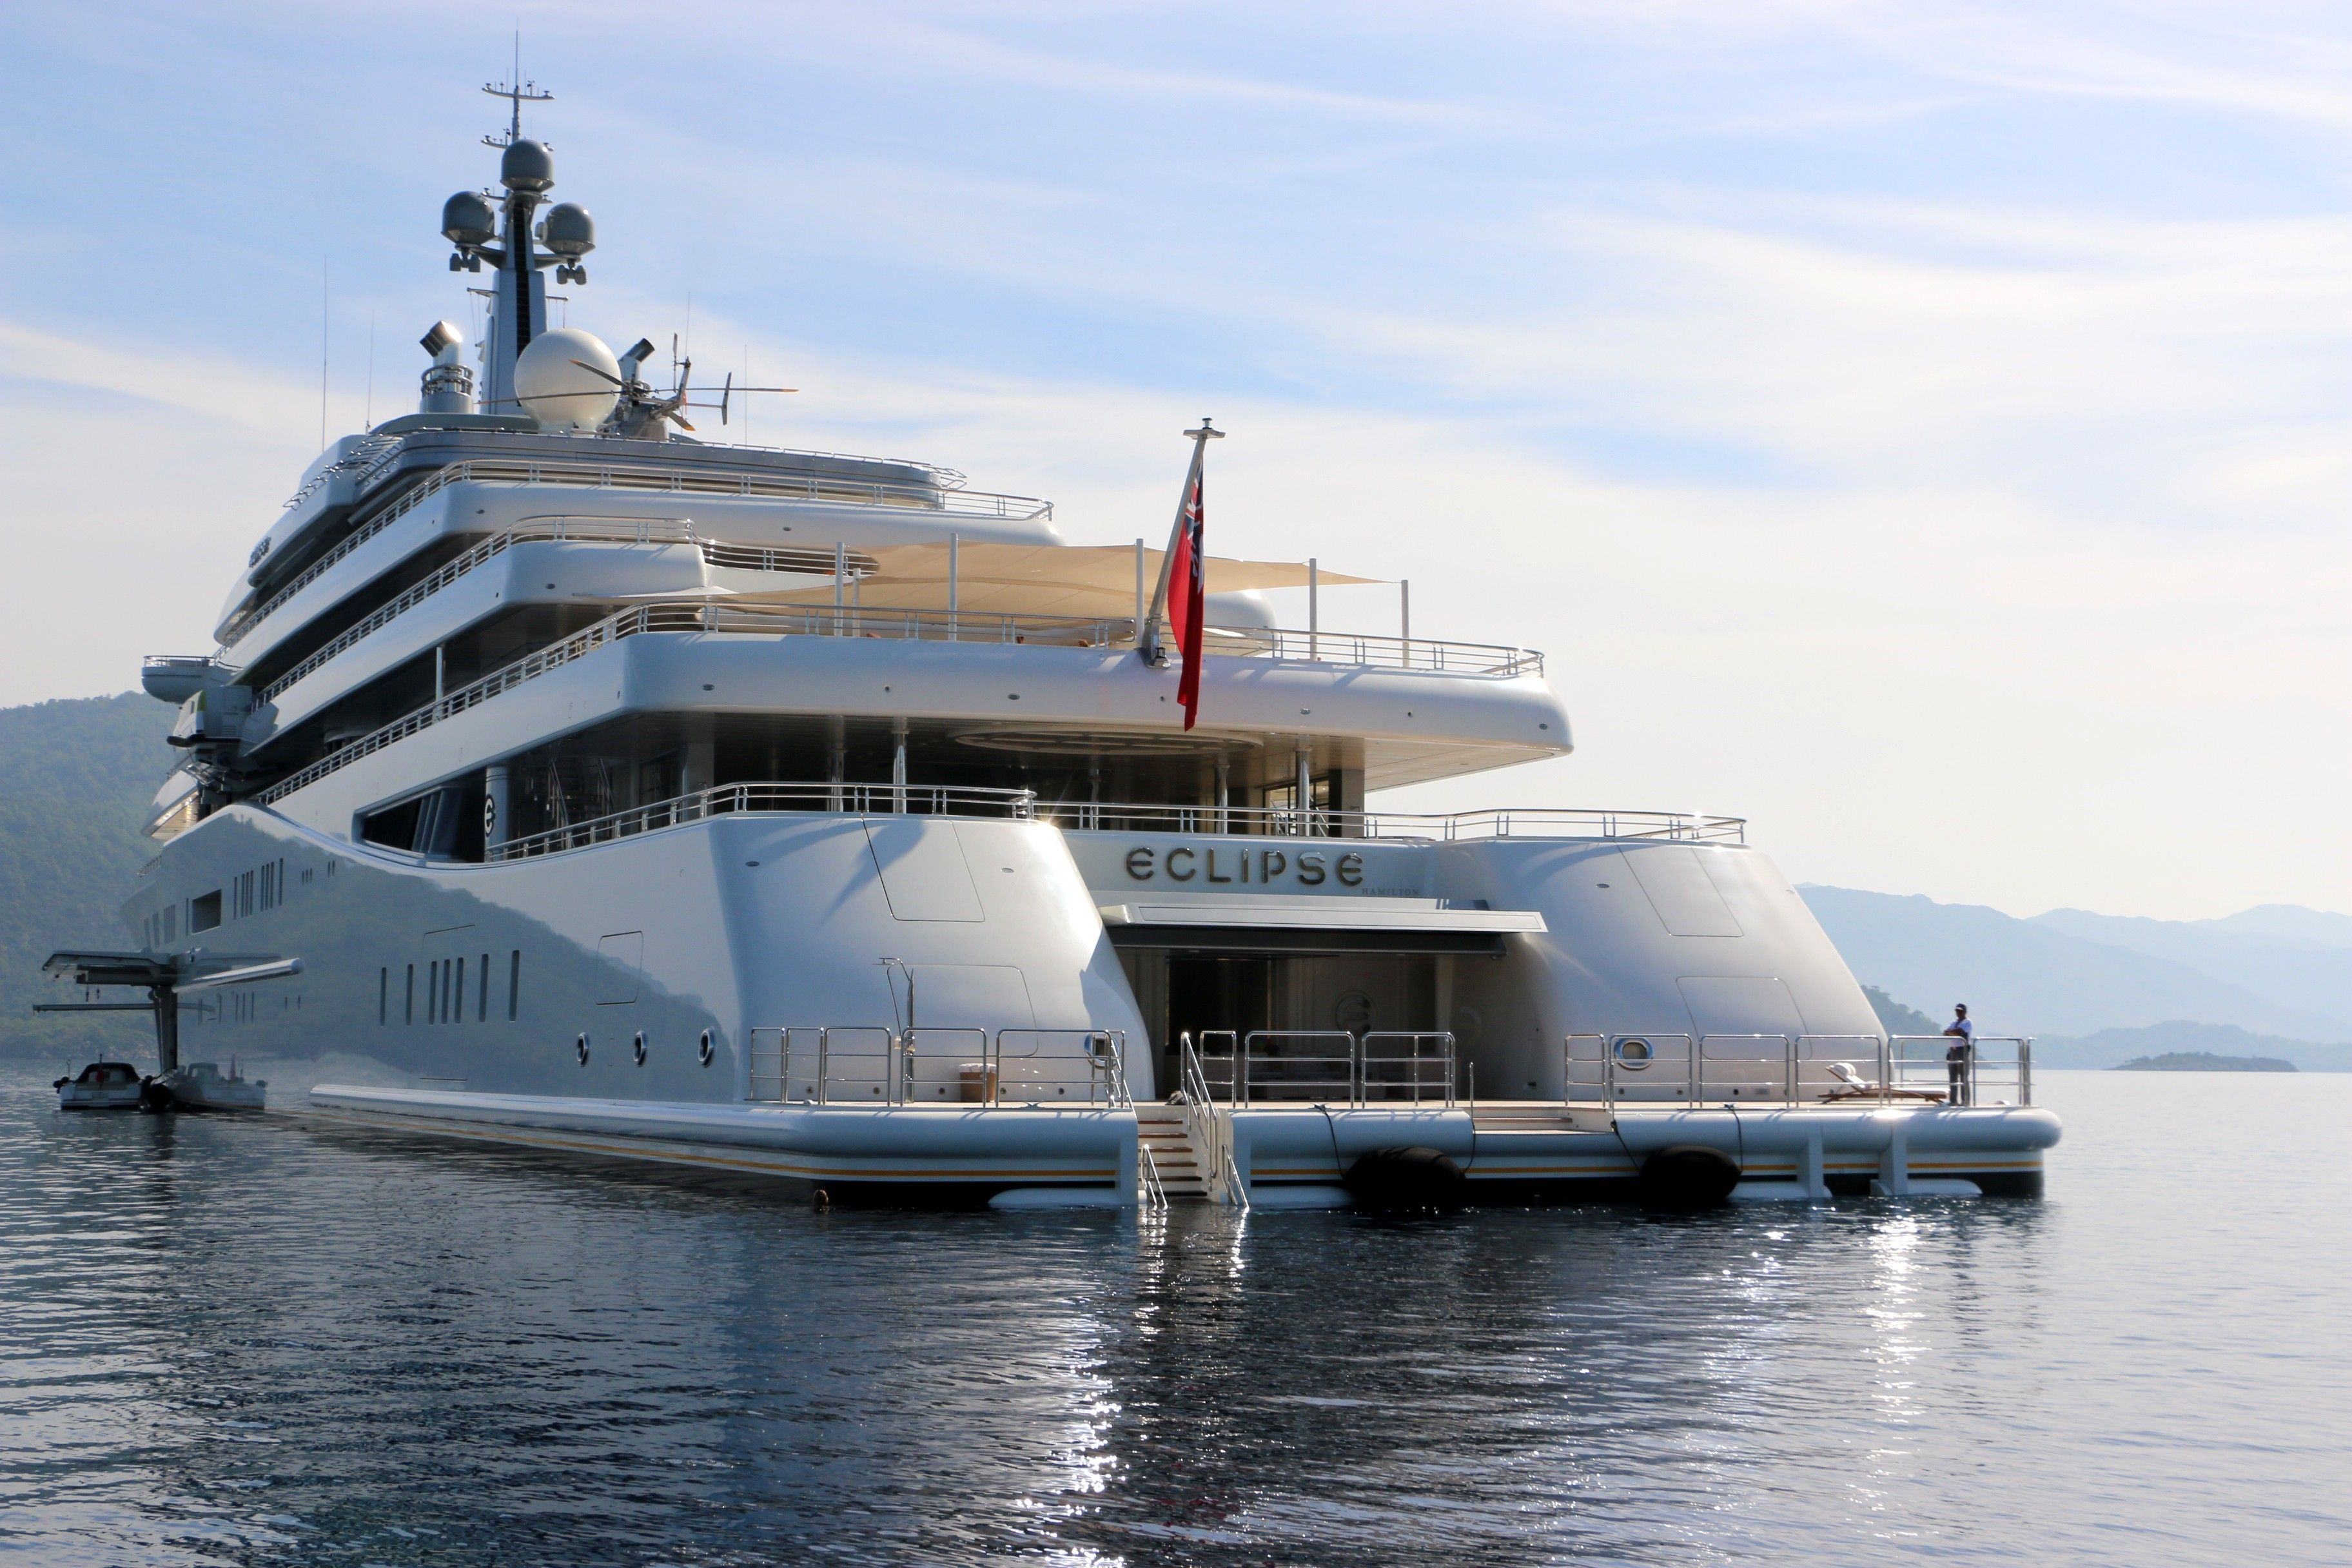 Roman Abramovich S Yacht Eclipse Anchors In Turkey Istanbul